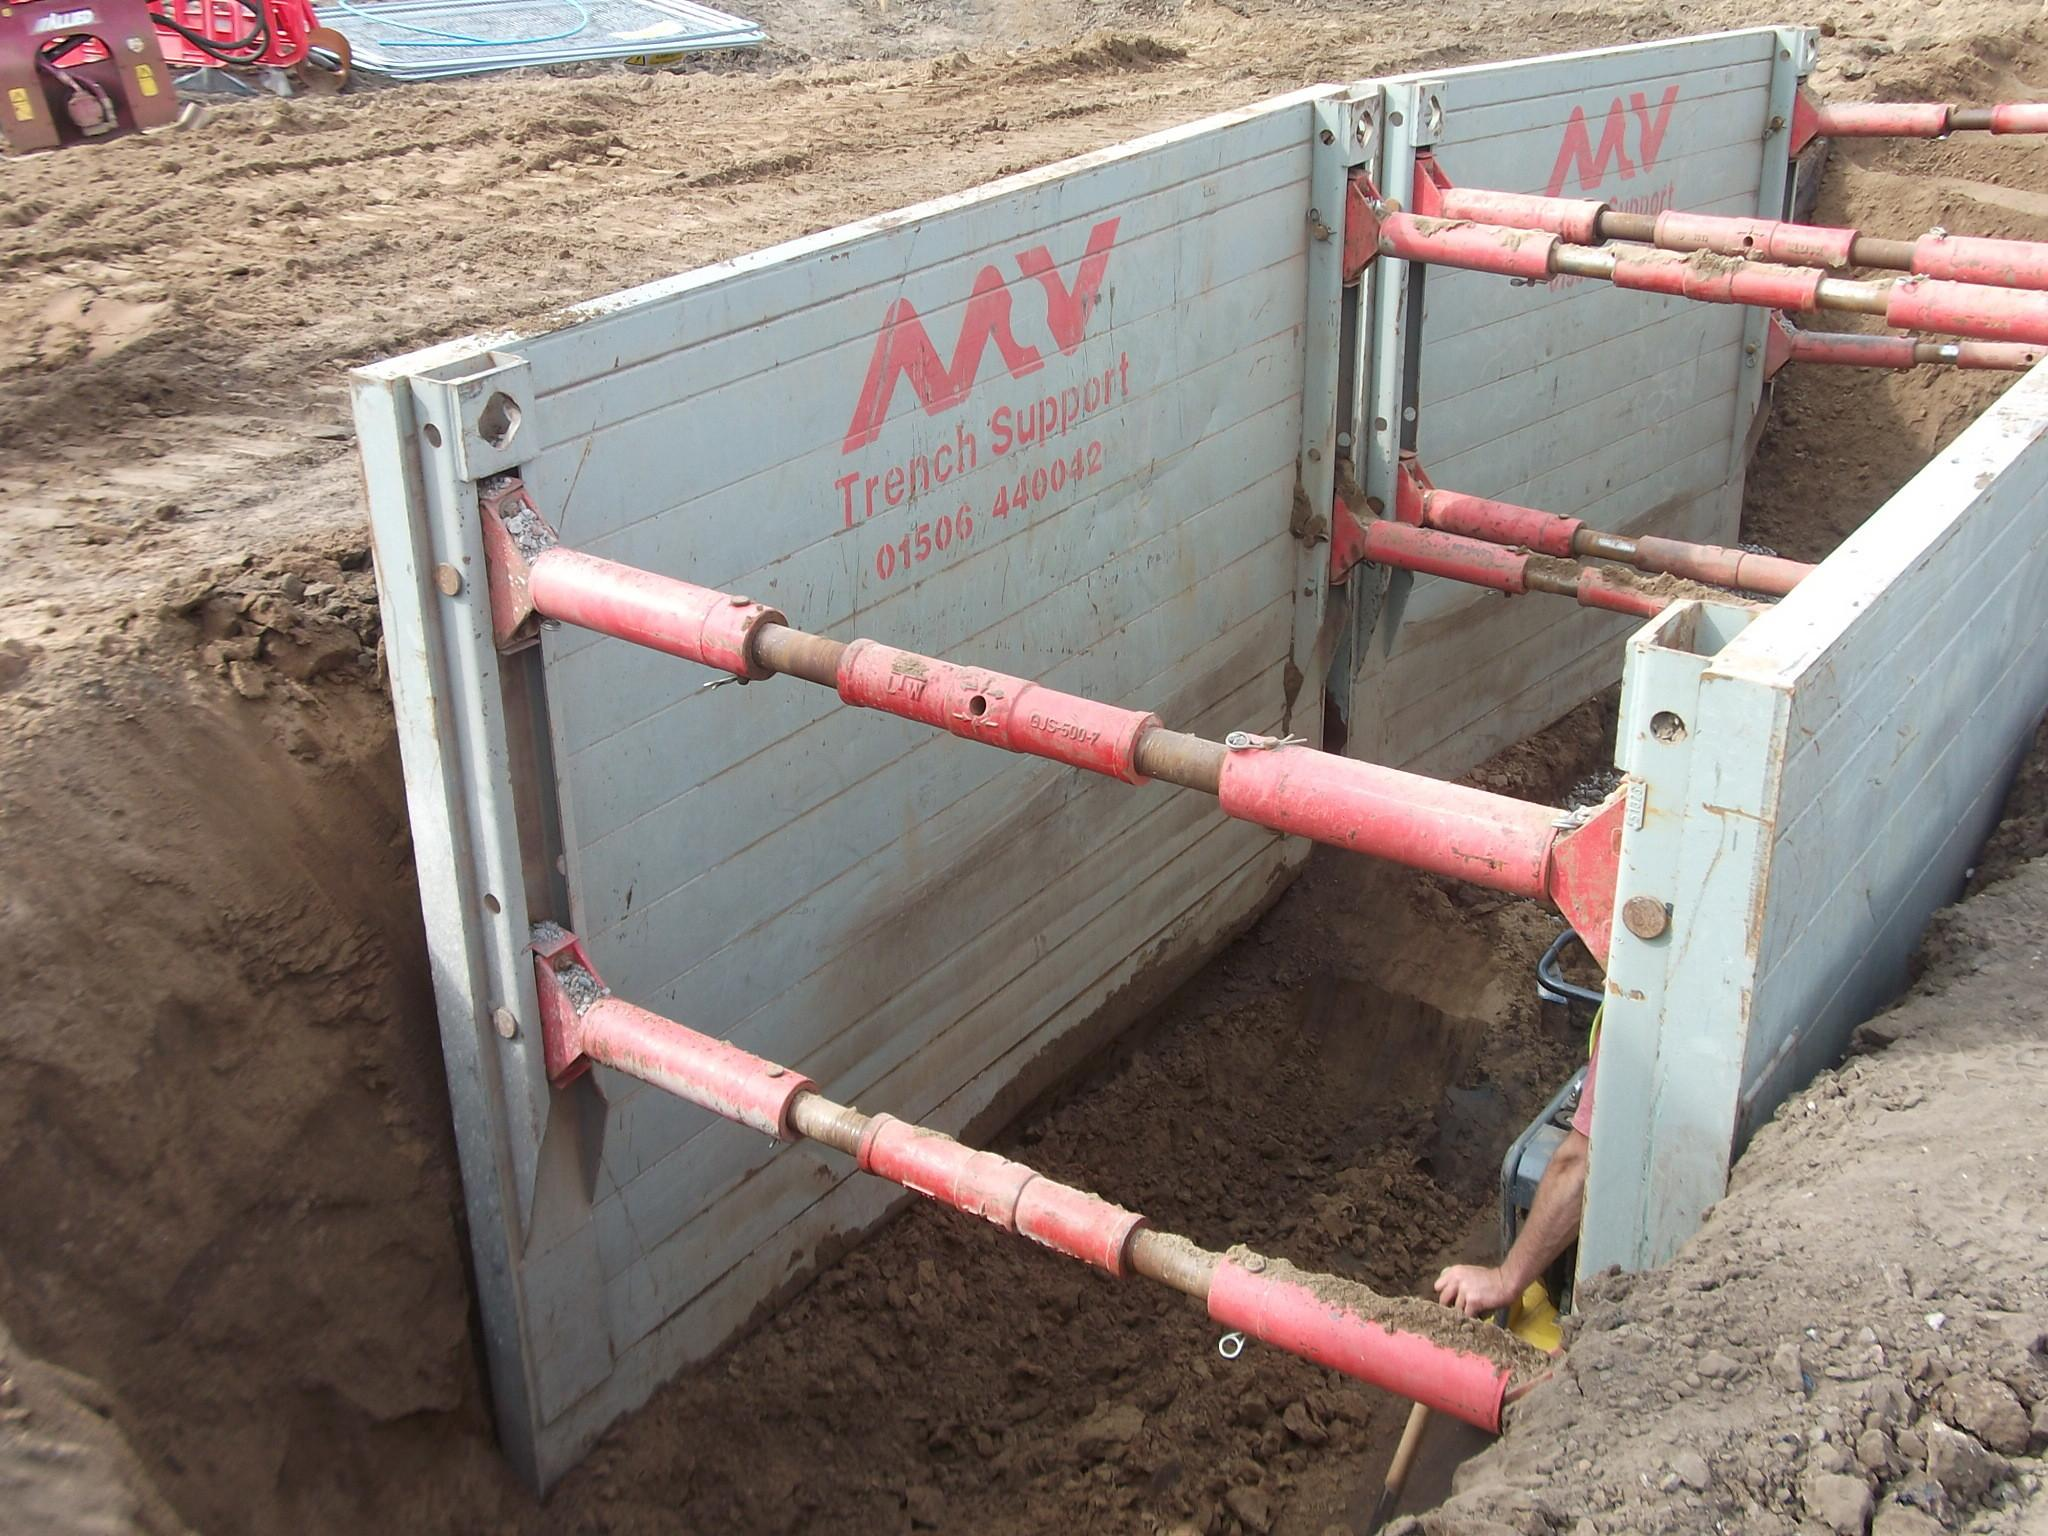 Trench Support